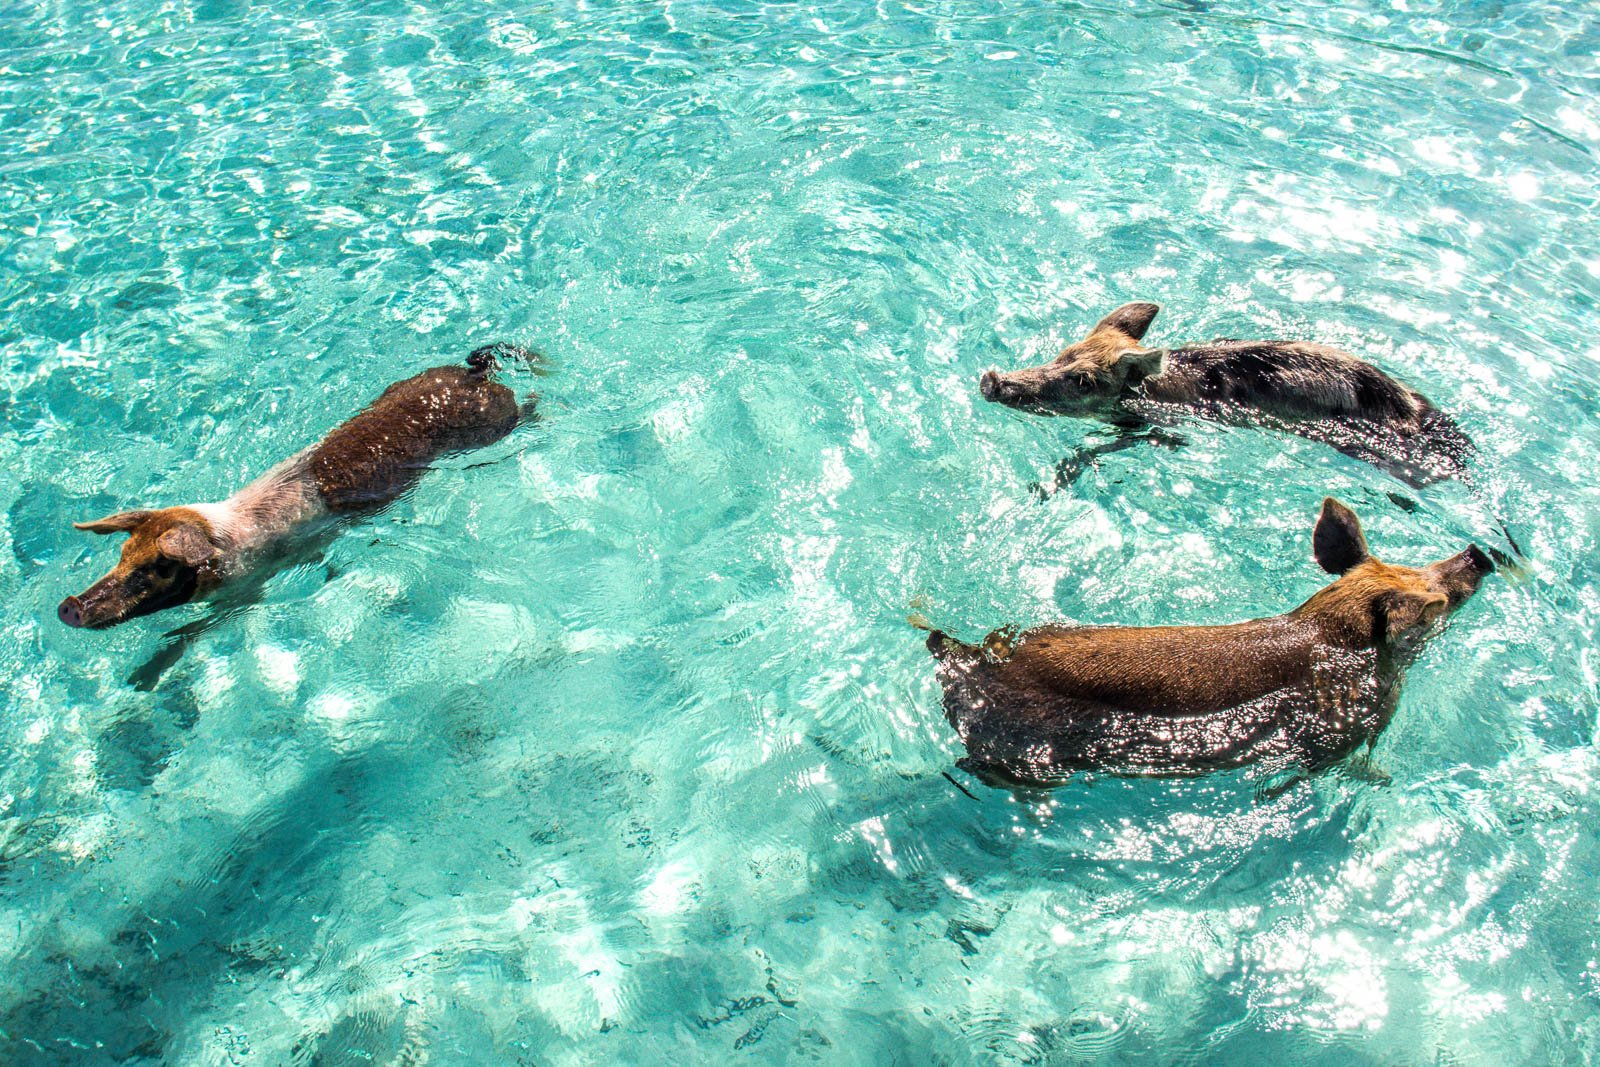 A day trip to Bahamas from Miami to see the island with pigs is very popular. The Boat from Miami to Bahamas isn't the best option for this excursion.